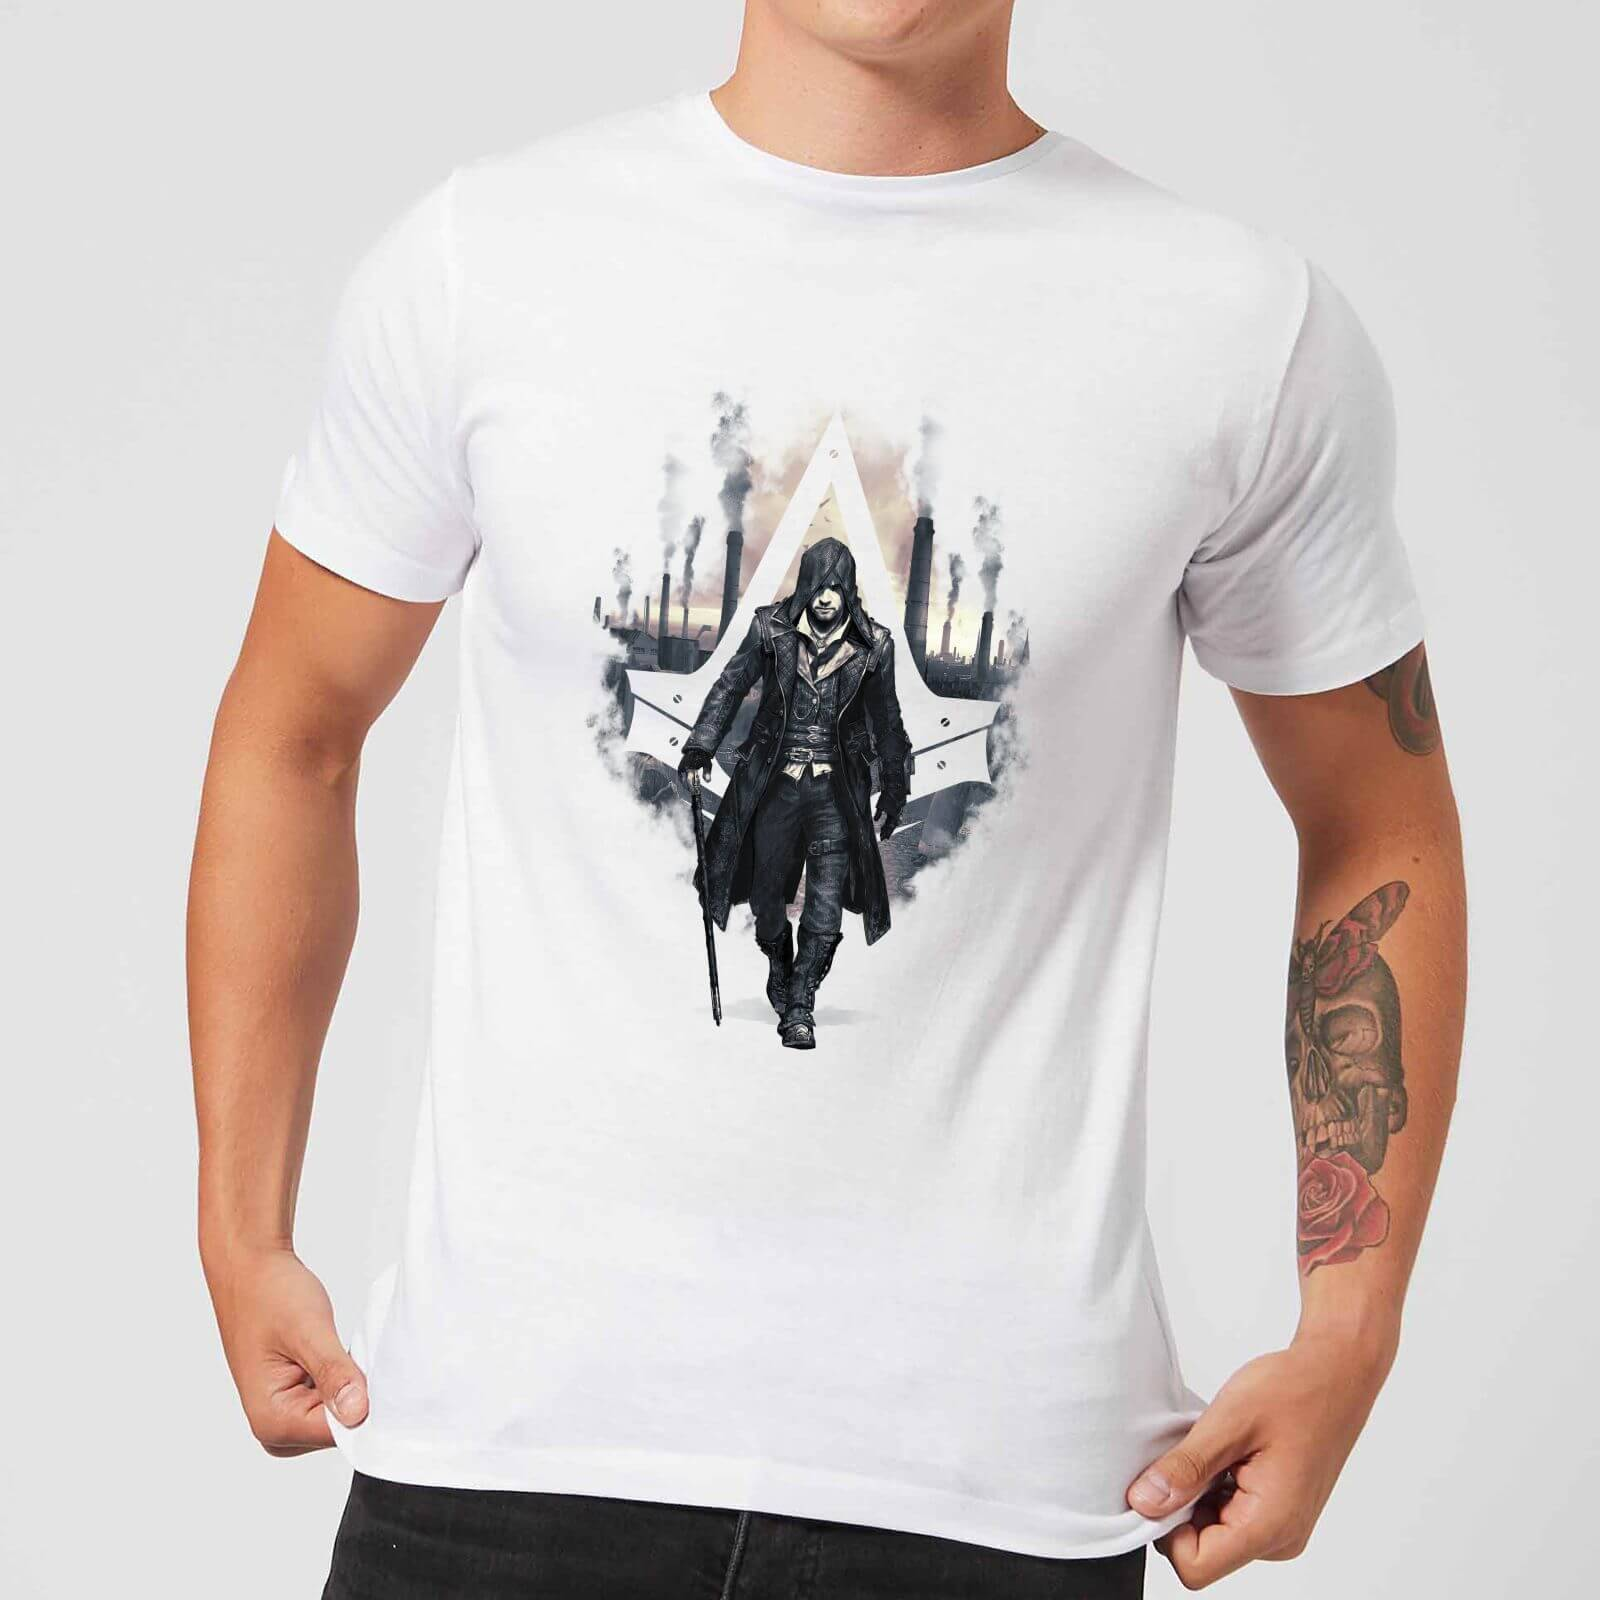 Assassin's Creed T-Shirt Homme London Skyline Assassin's Creed Syndicate - Blanc - S